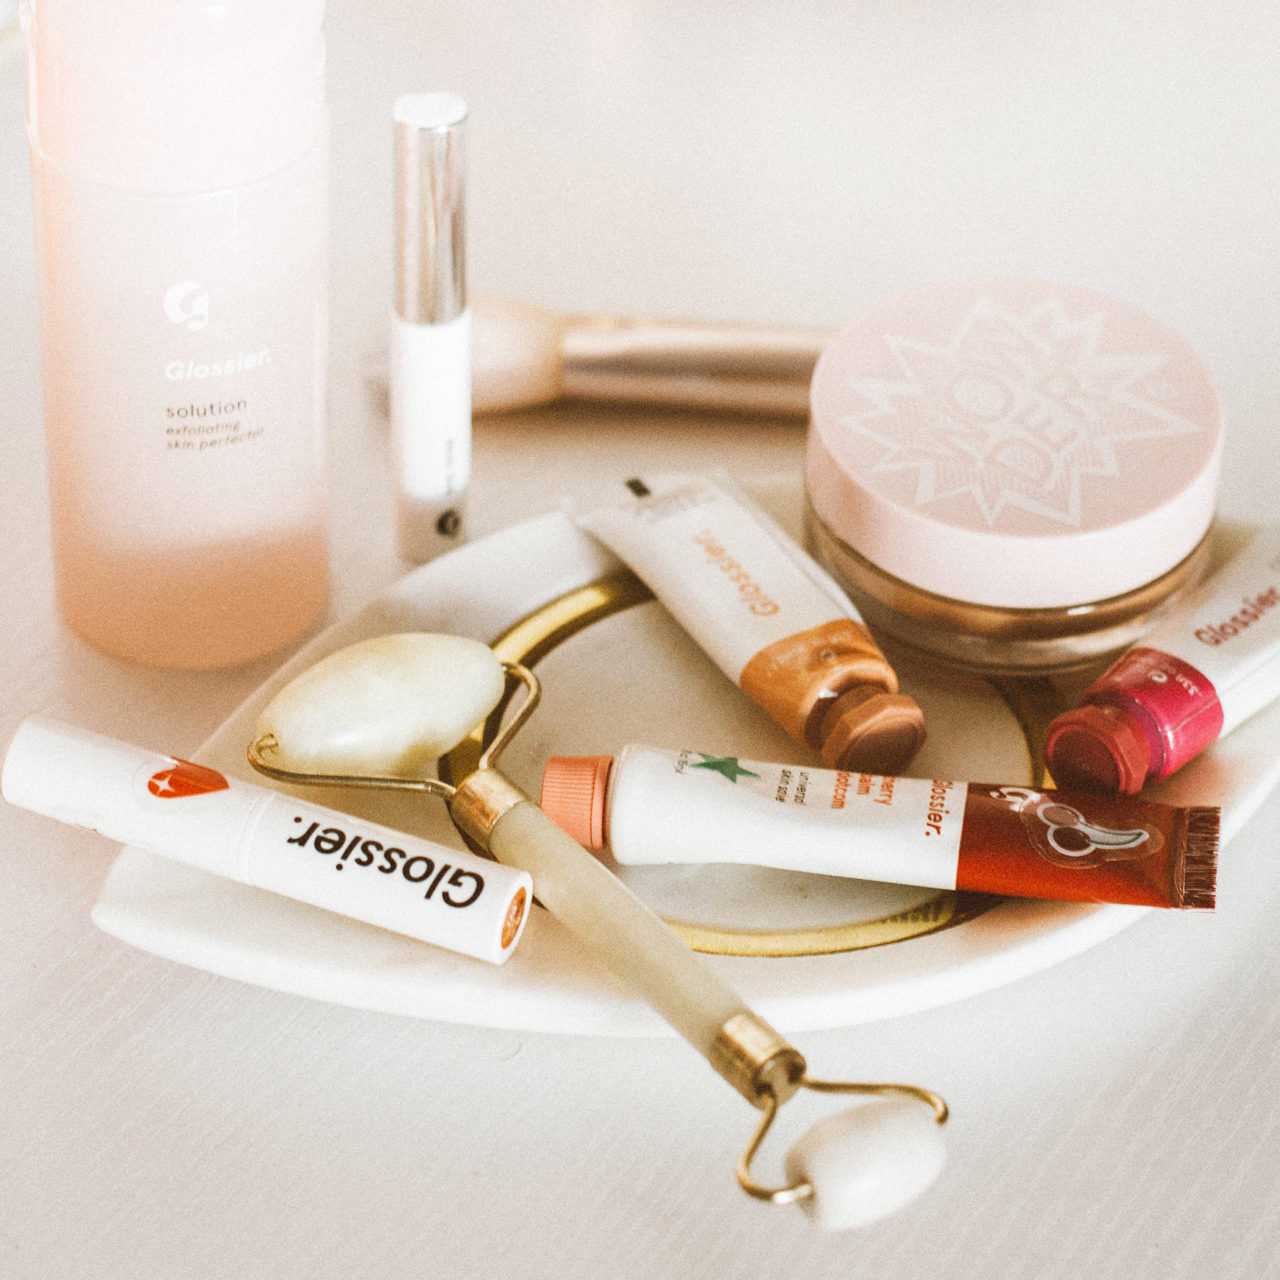 Glossier Haul, Swatches, and Honest Review